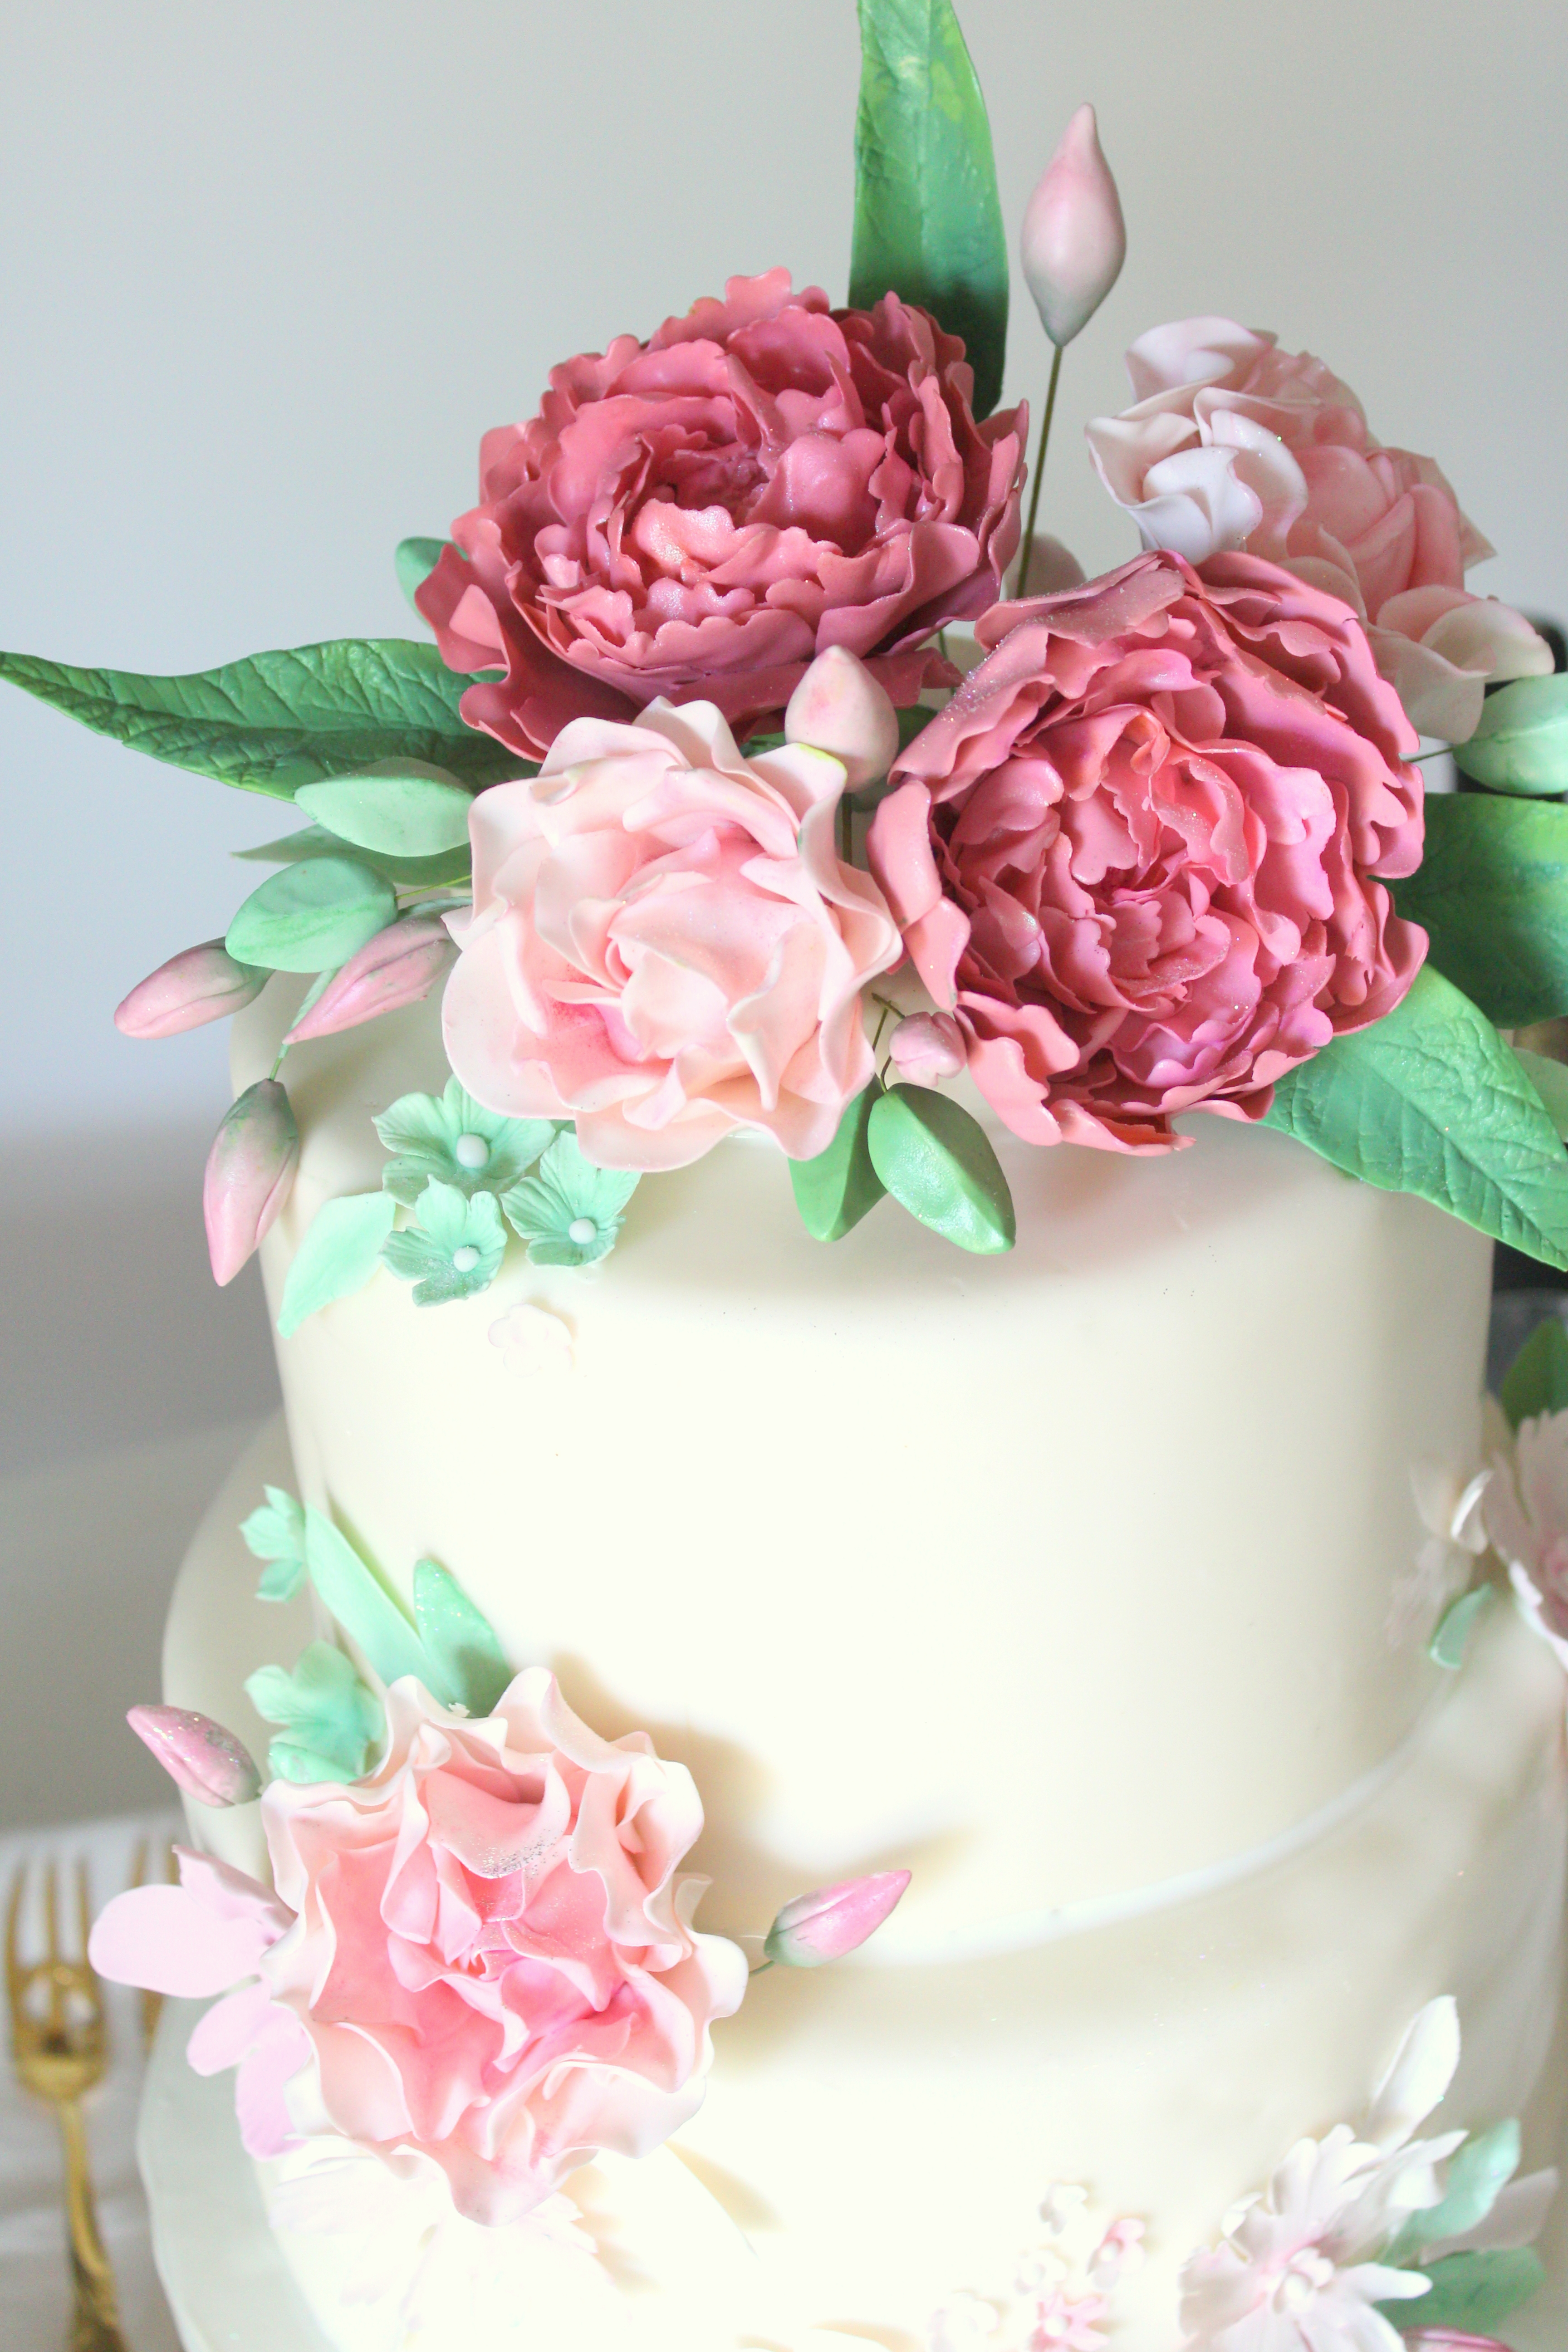 pink peony and rose shower cake close up topper.jpg